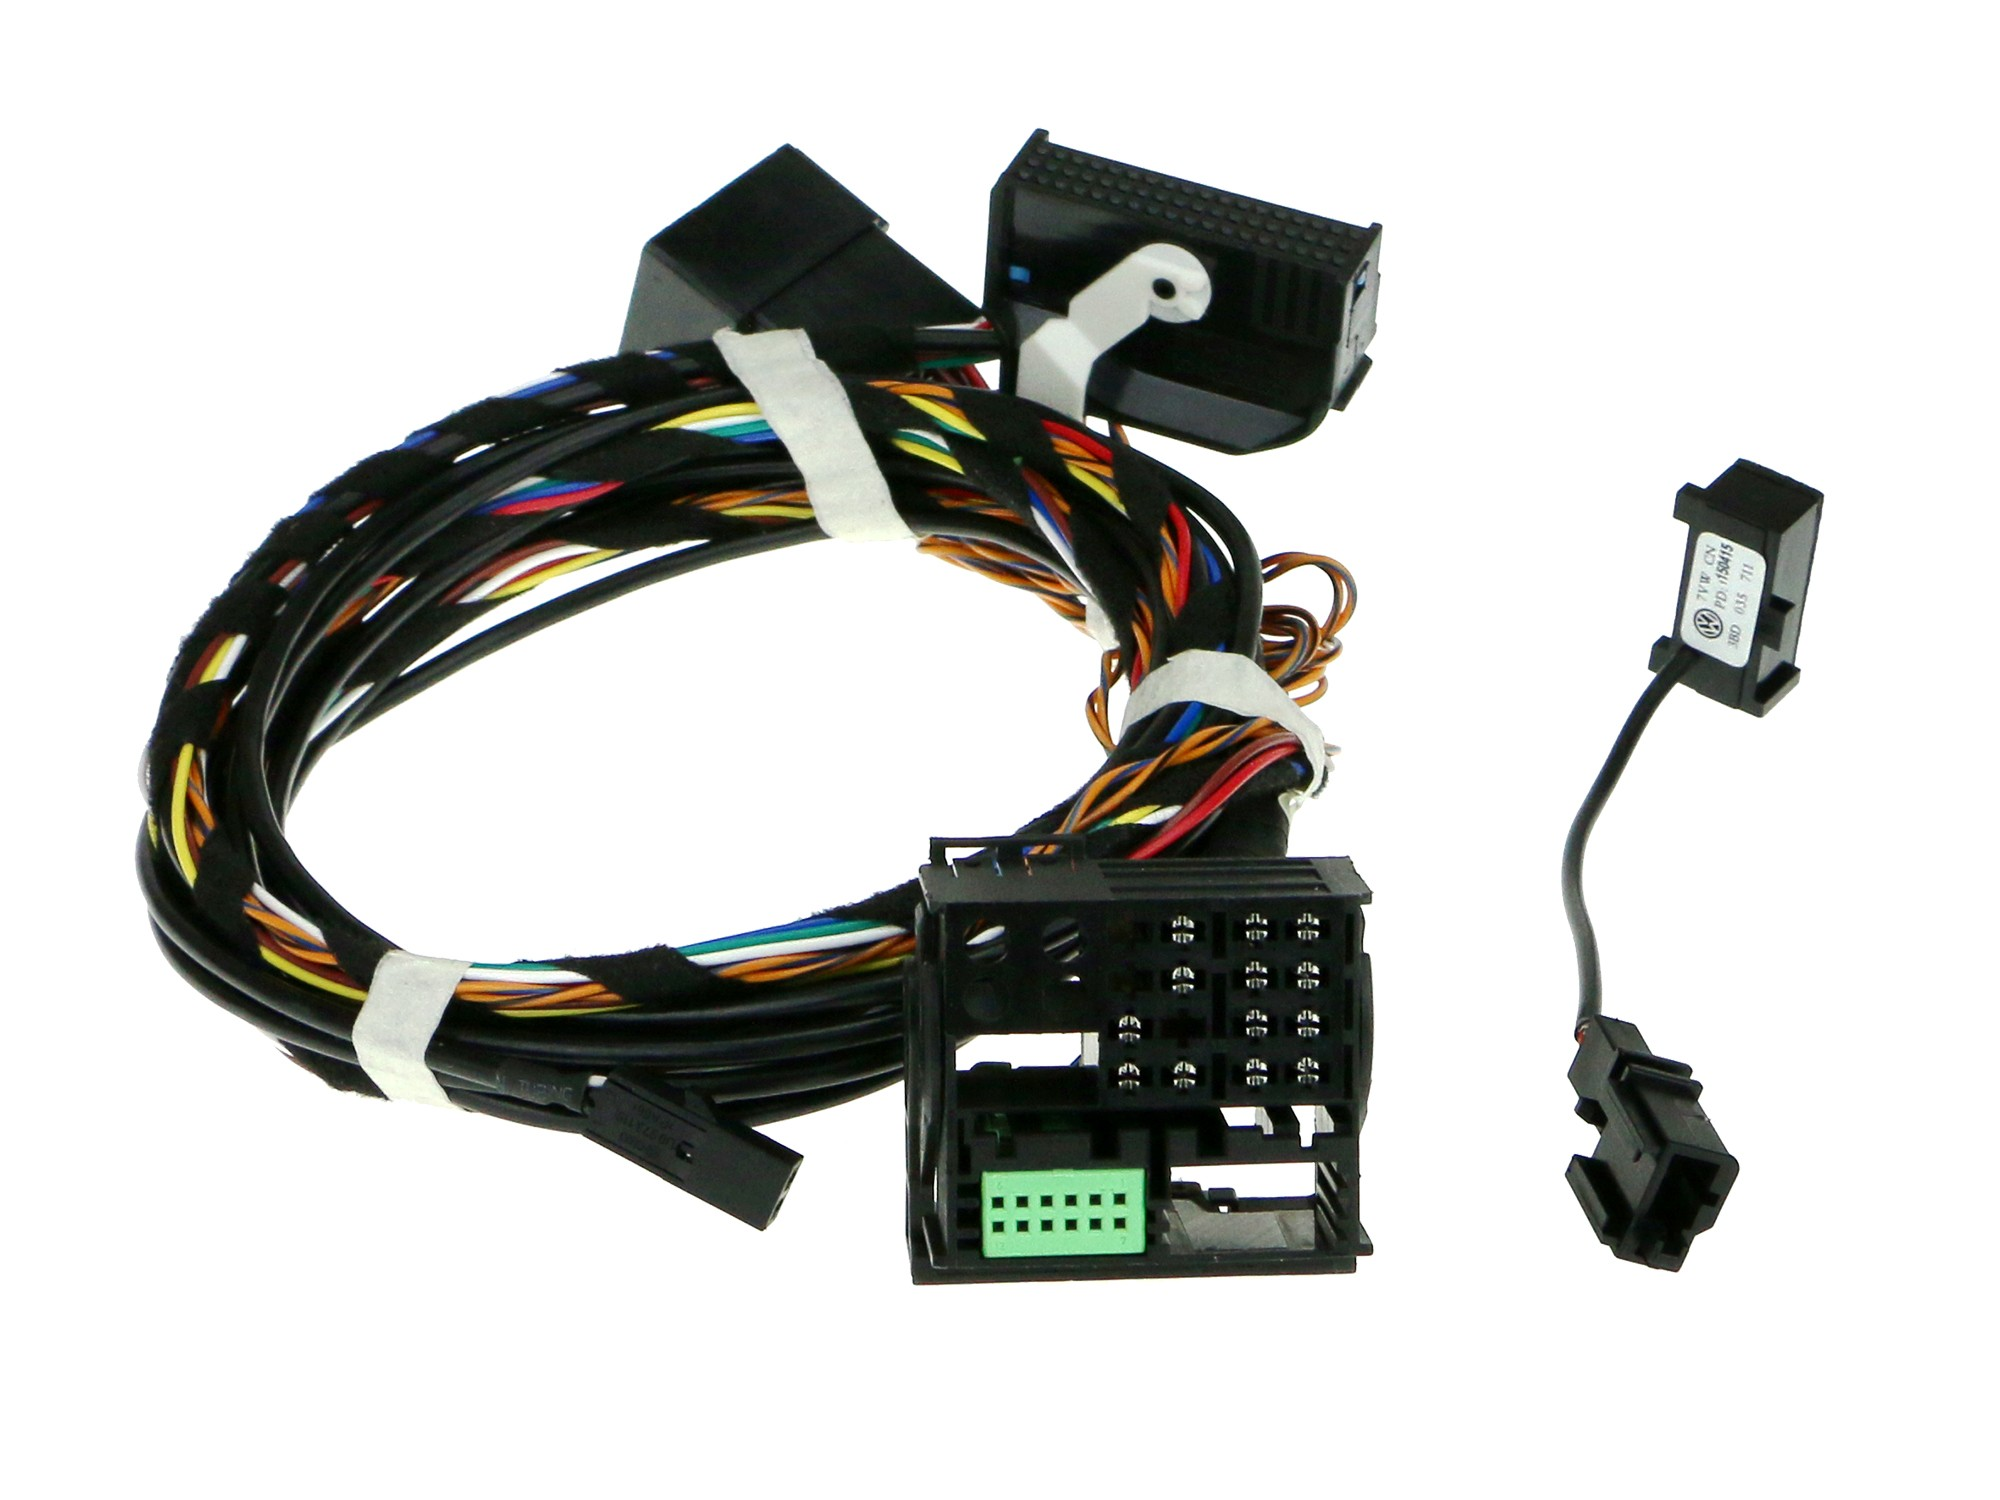 vw bluetooth module wiring harness adapter upgrade rcd510 rns510 rh ebay com VW Jetta Bluetooth Bluetooth Phone